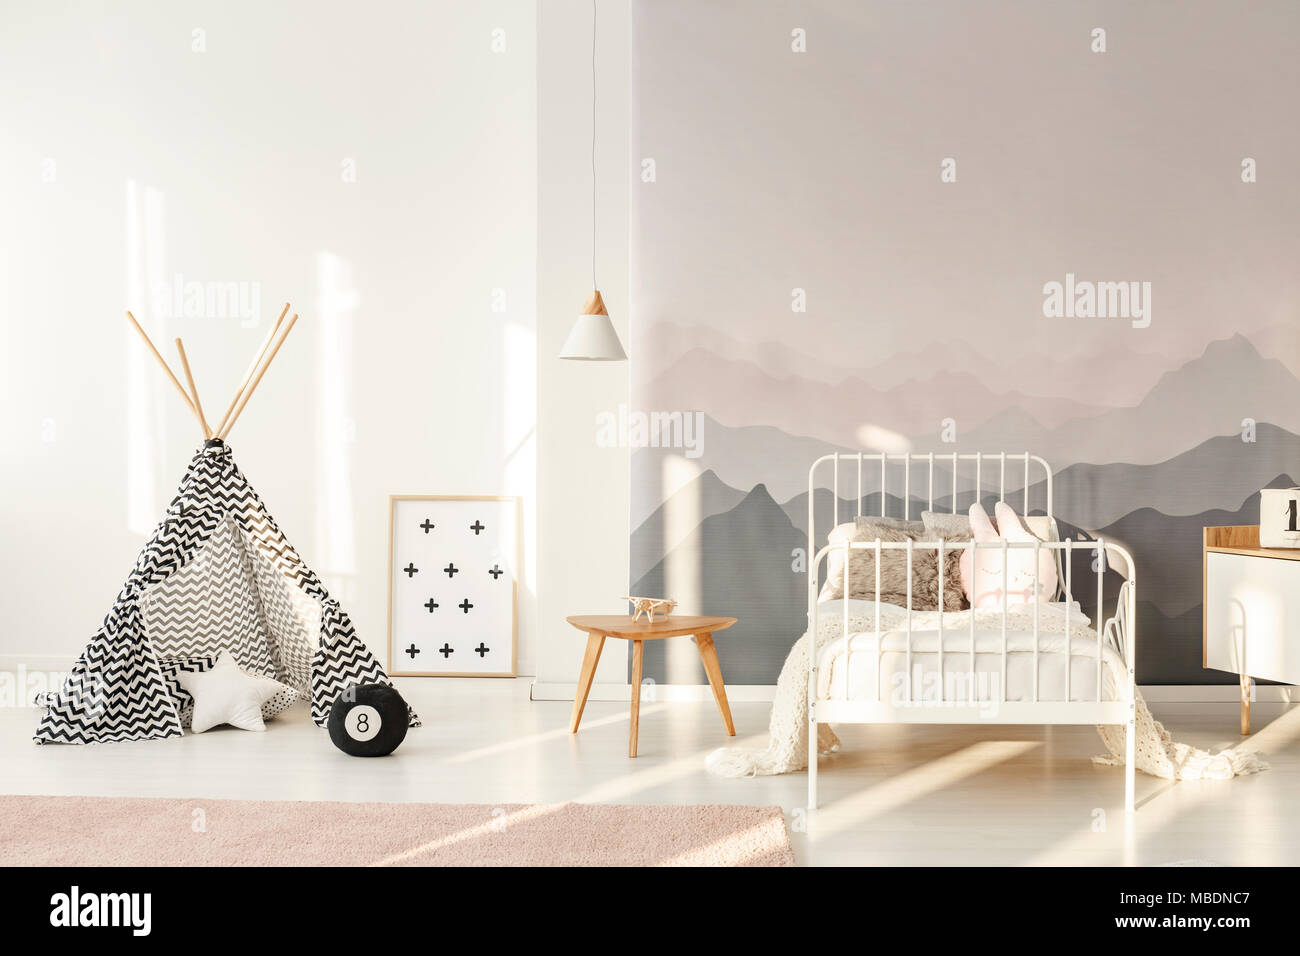 Download Wallpaper Mountain Bedroom - white-childs-bed-against-a-wall-with-mountain-wallpaper-in-bedroom-interior-with-patterned-tent-MBDNC7  Graphic_619744.jpg